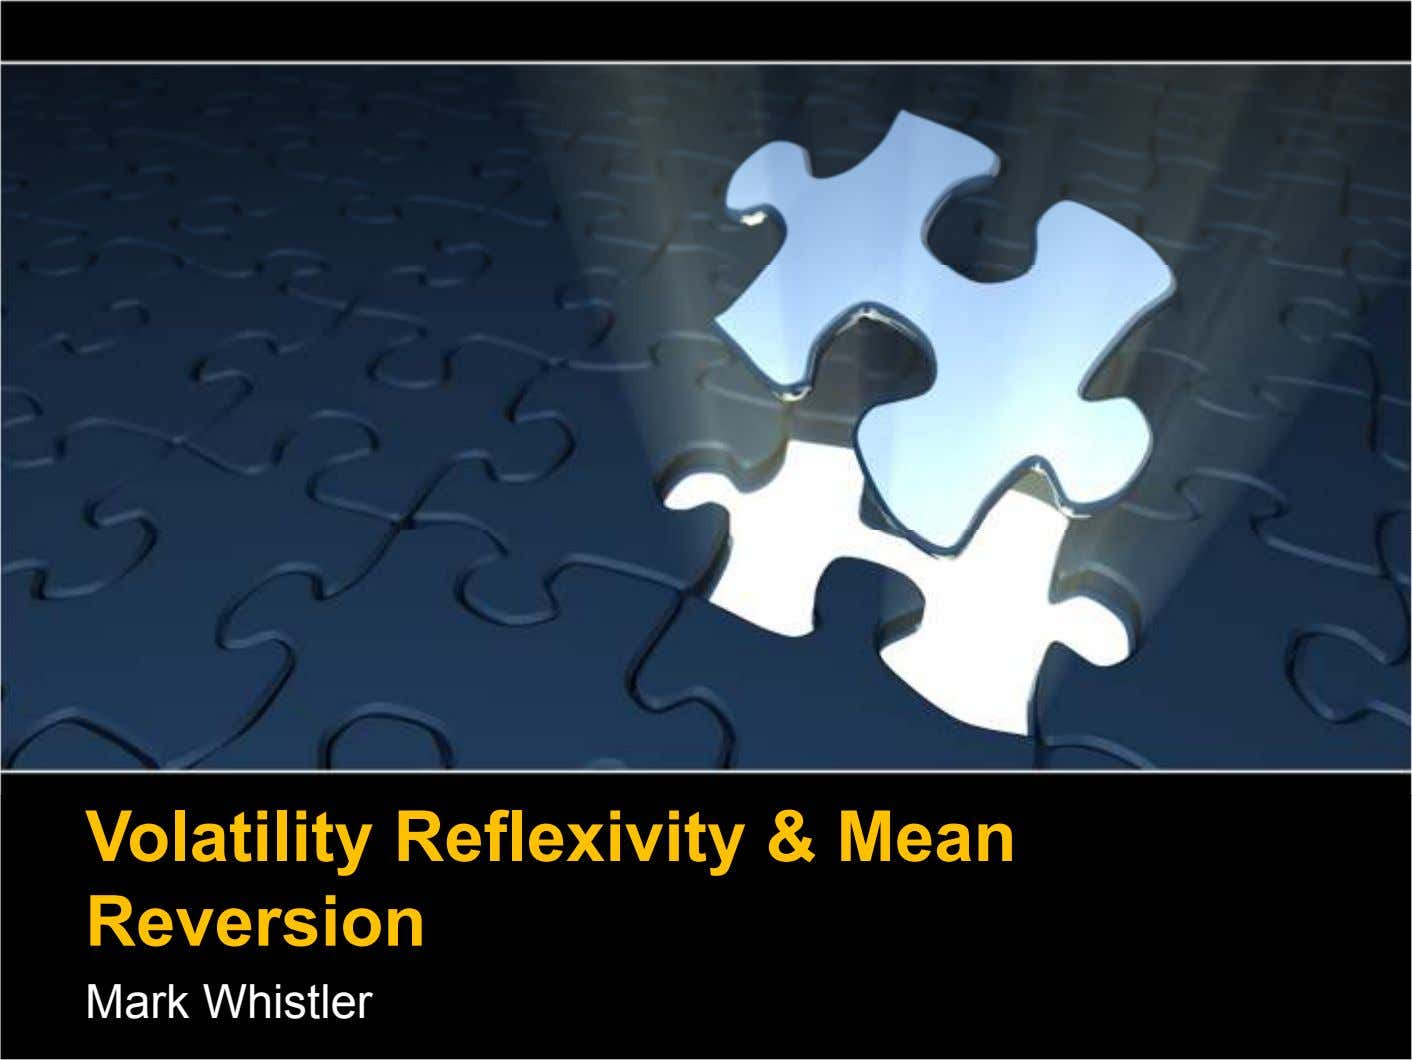 Volatility Reflexivity & Mean Reversion Mark Whistler